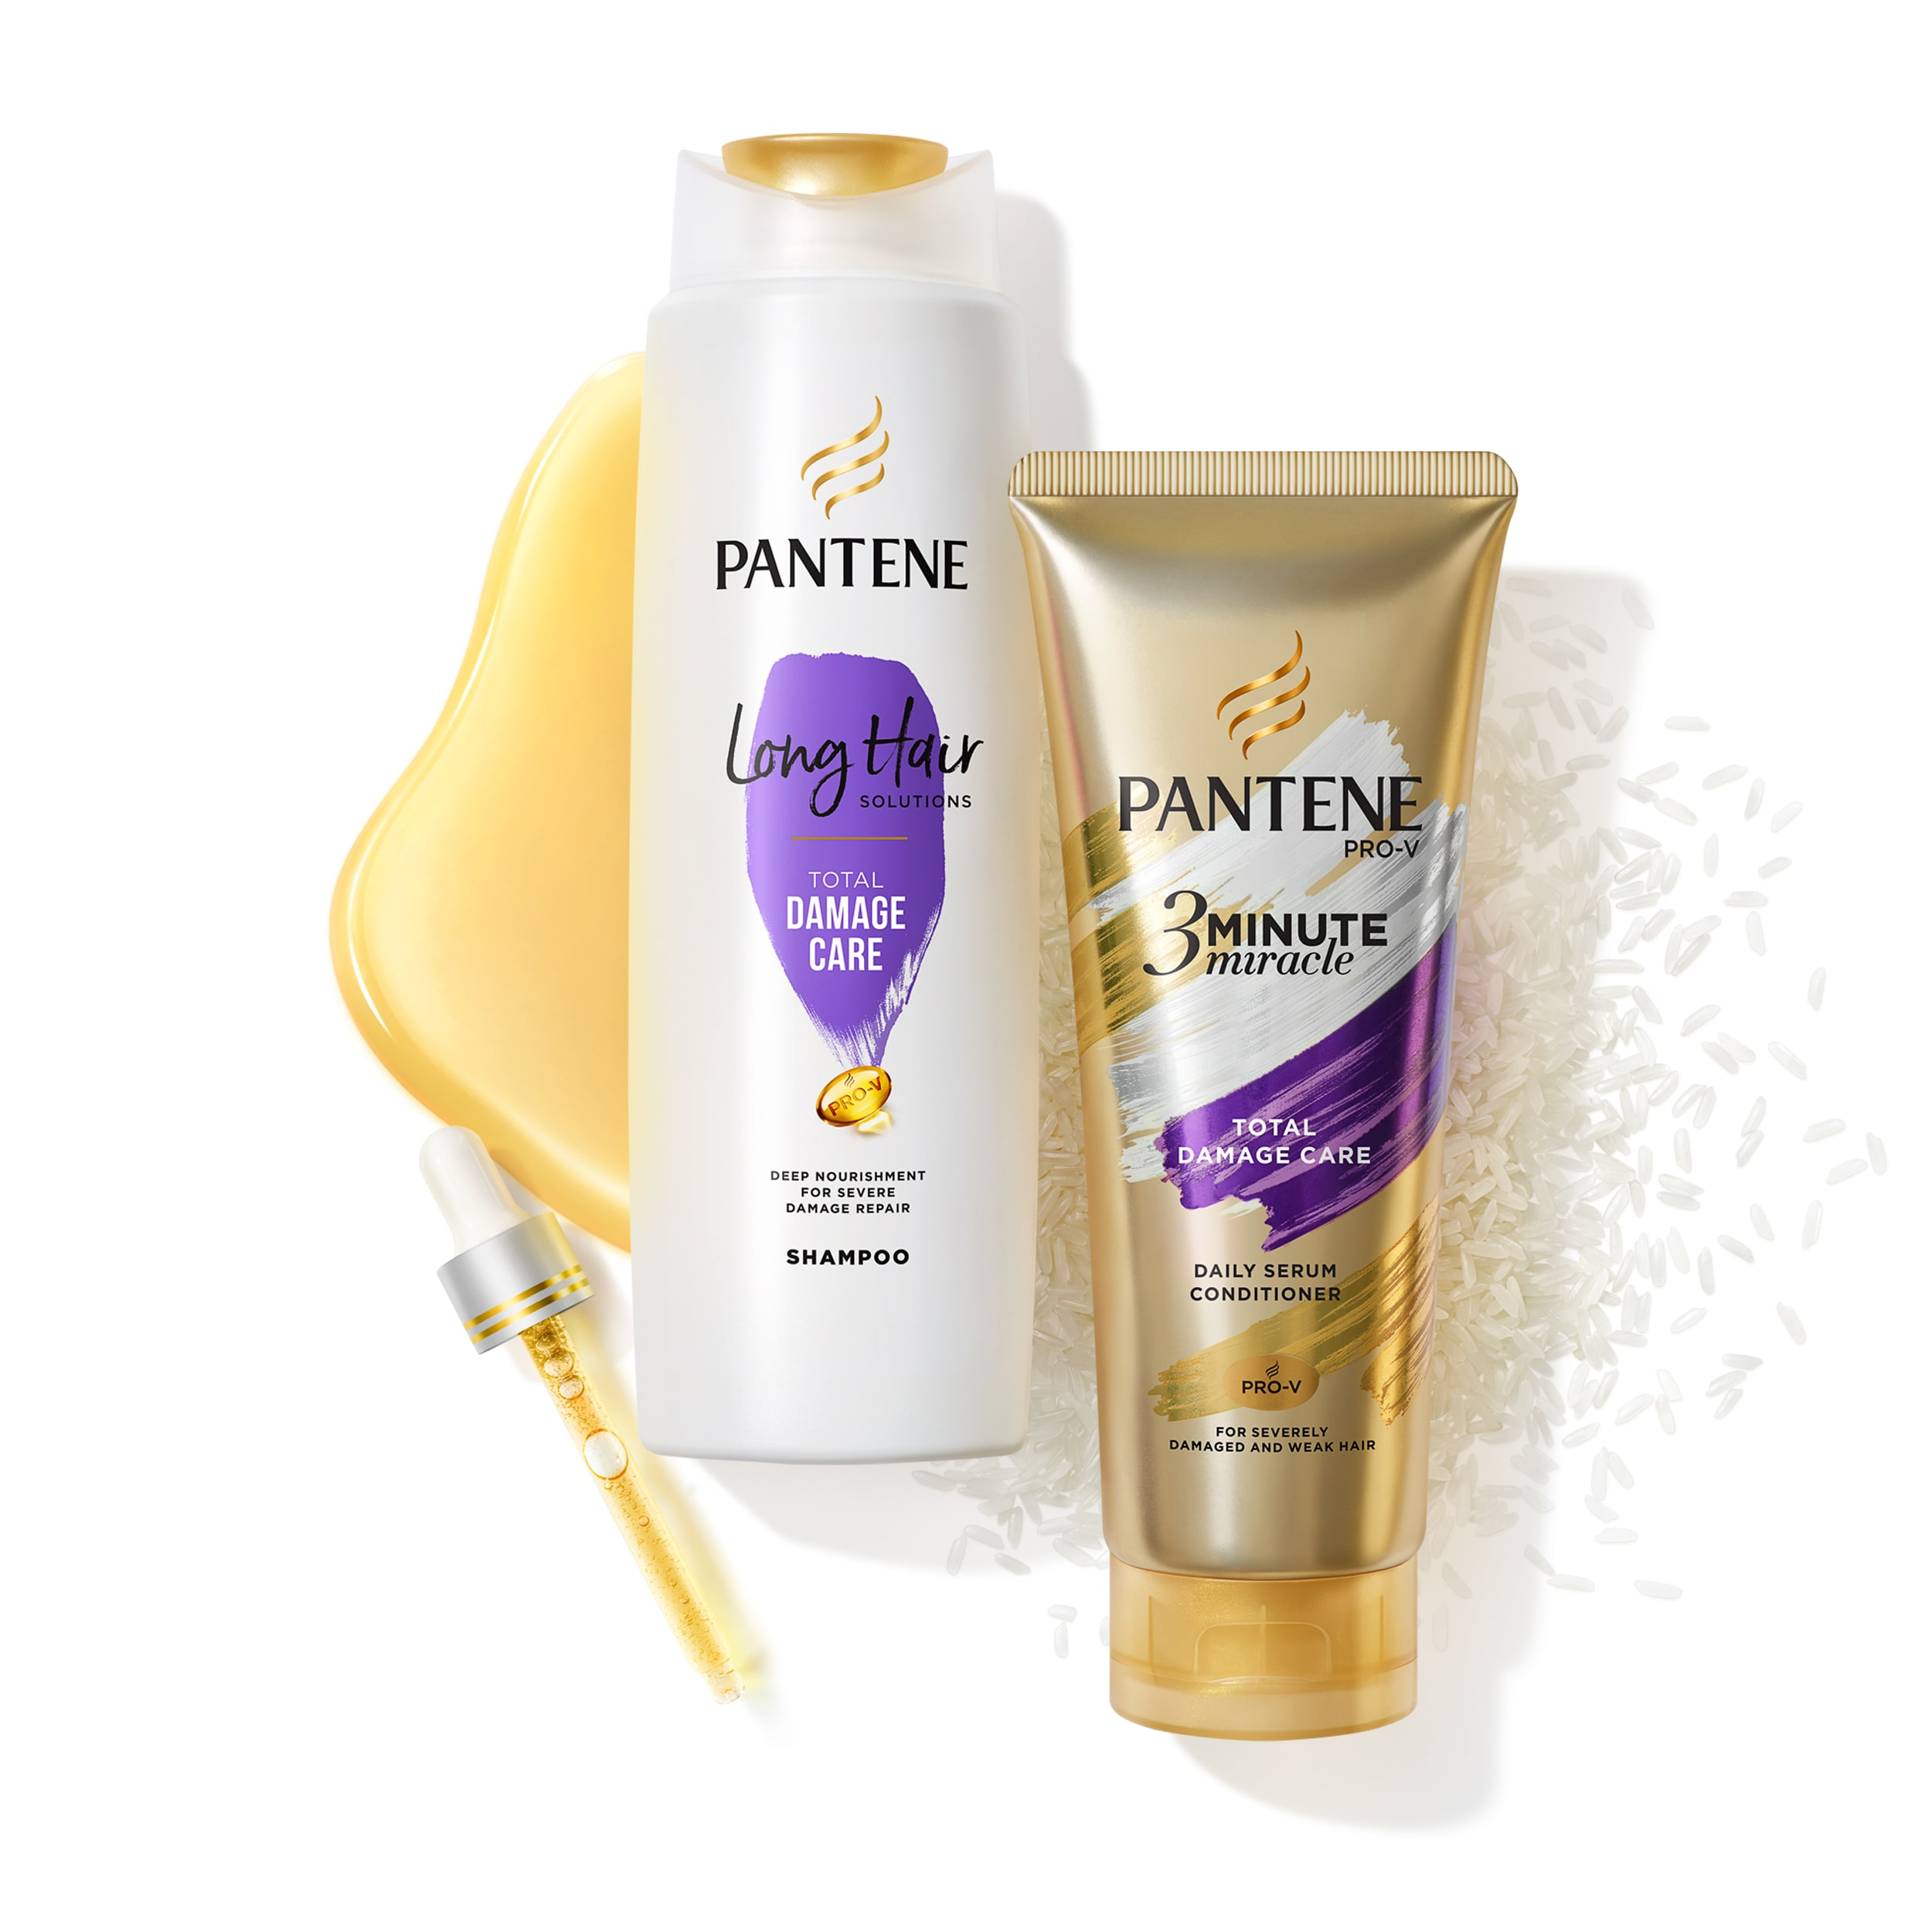 Pantene long hair shampoo and conditioner